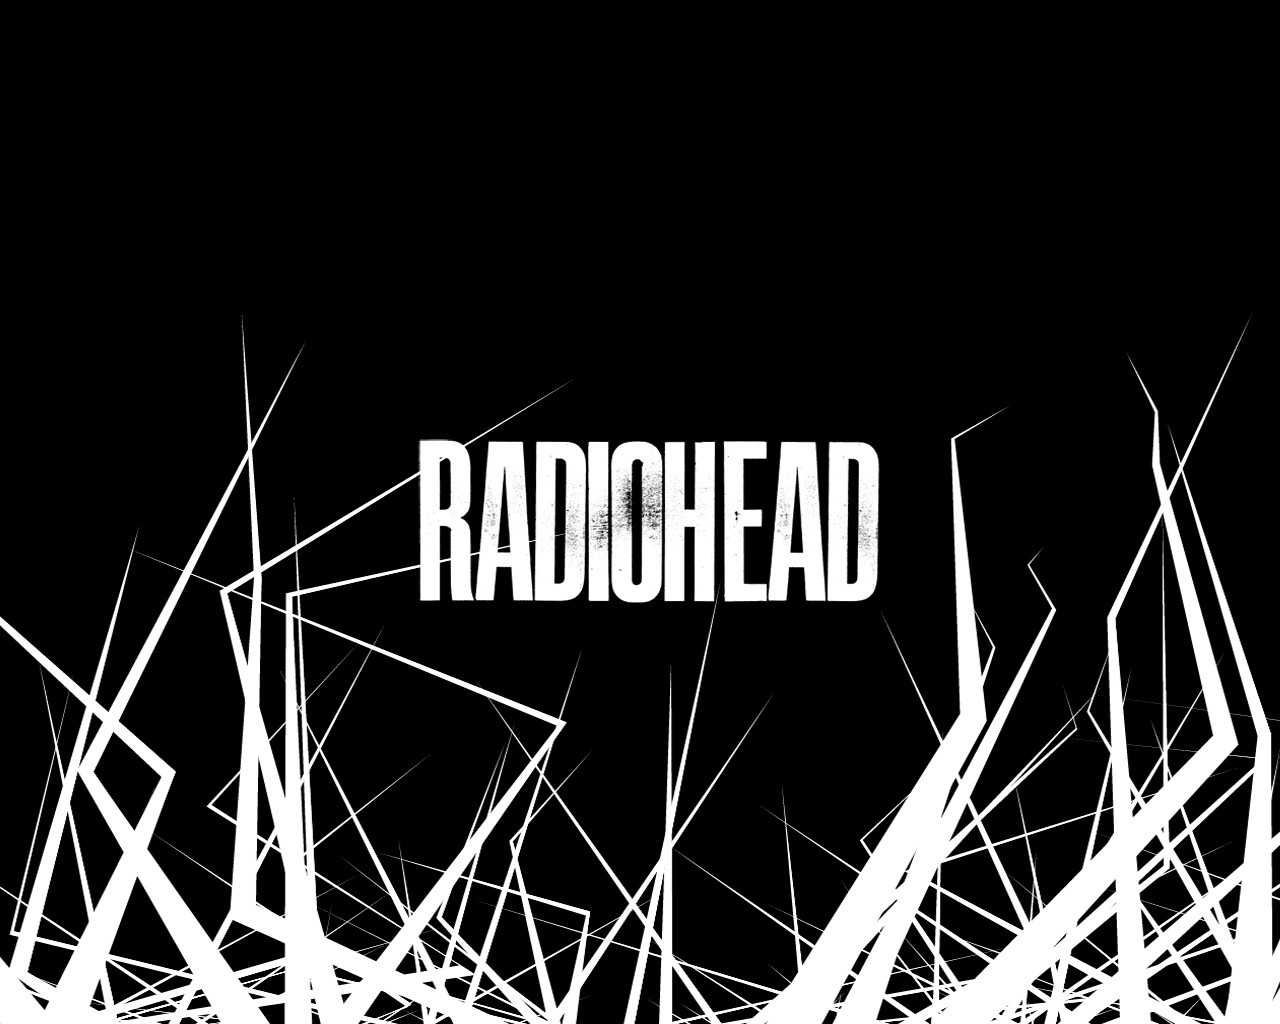 Radiohead Images Radiohead Hd Wallpaper And Background Photos 27519290